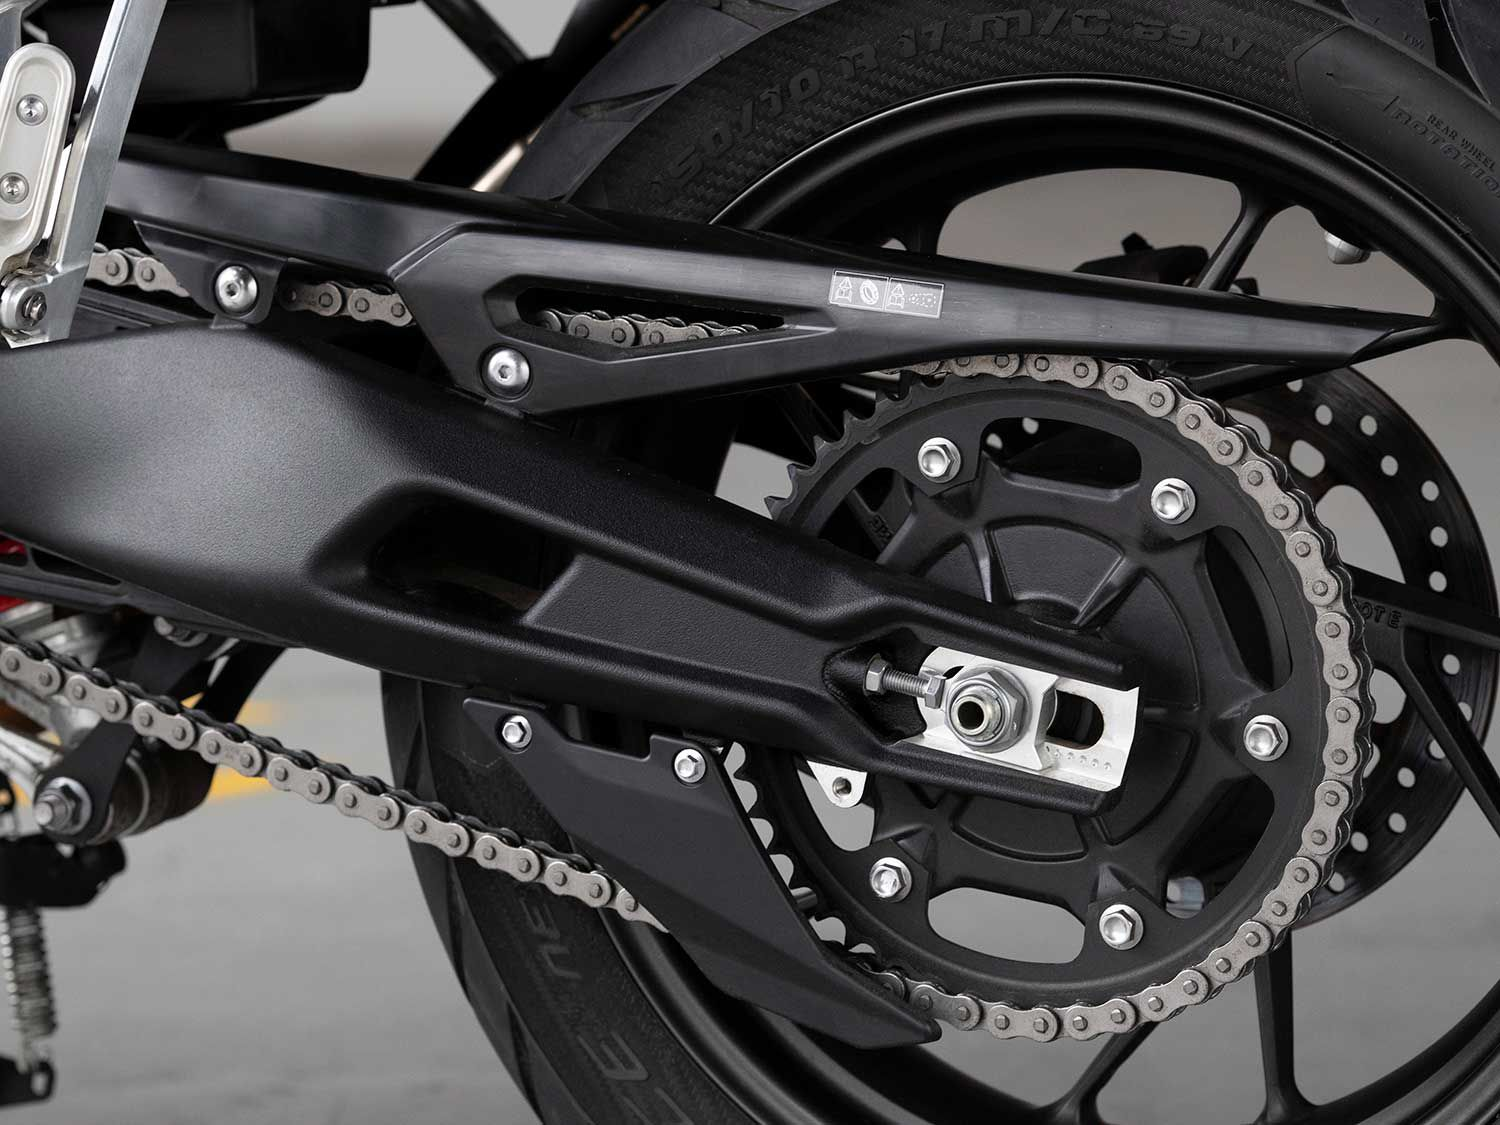 A cast alloy swingarm and left-hand-side chain final drive put power to the rear wheel.